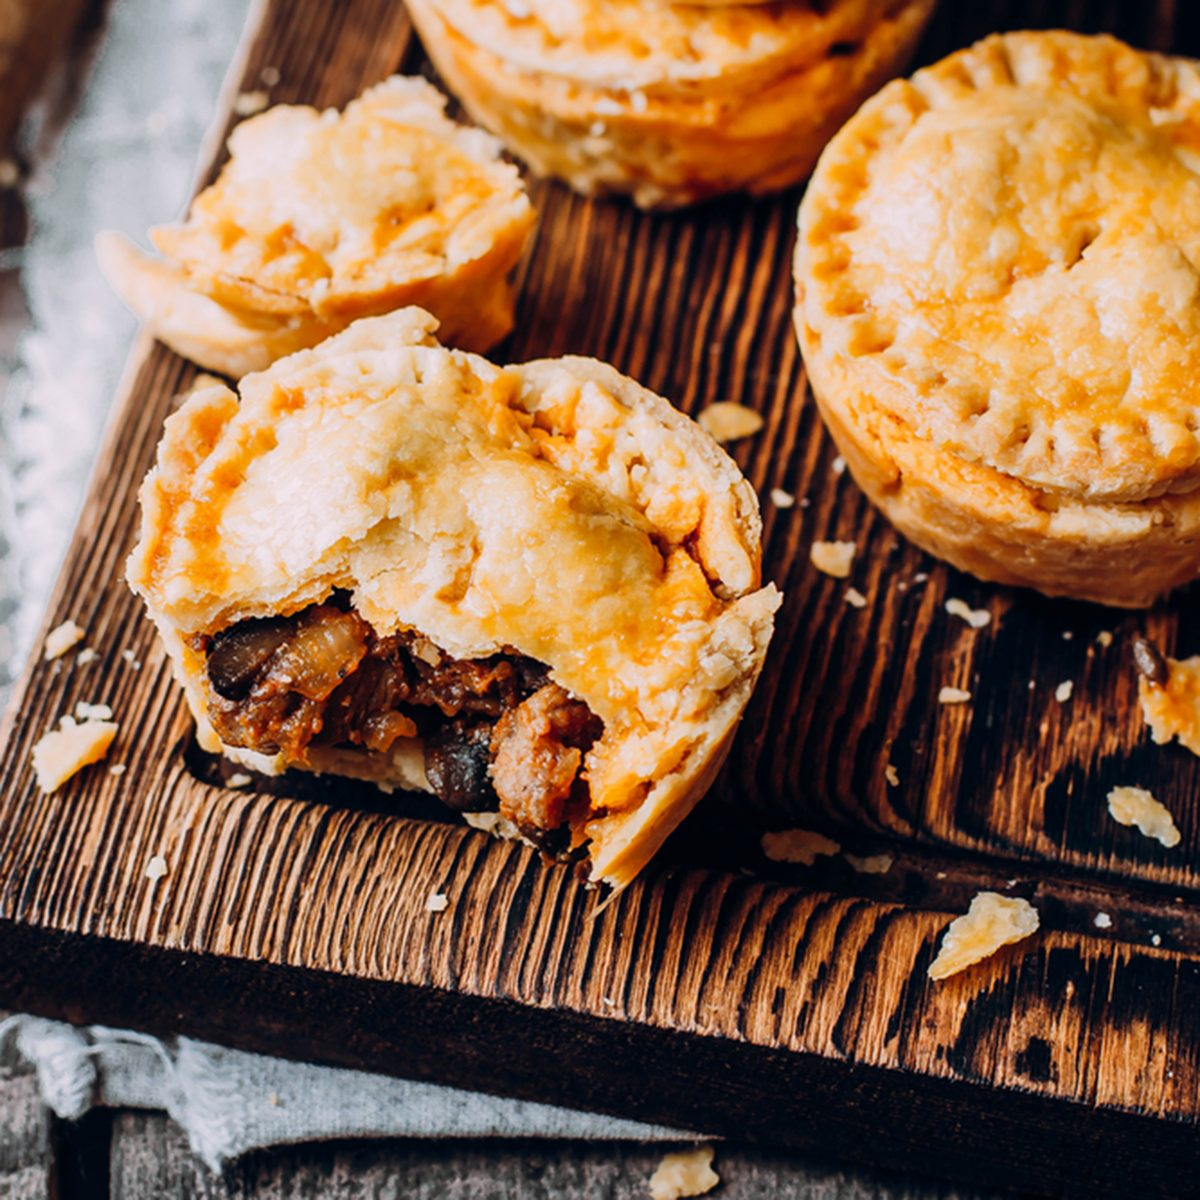 Fresh Traditional Australian meat mini pie on the wooden board on table background